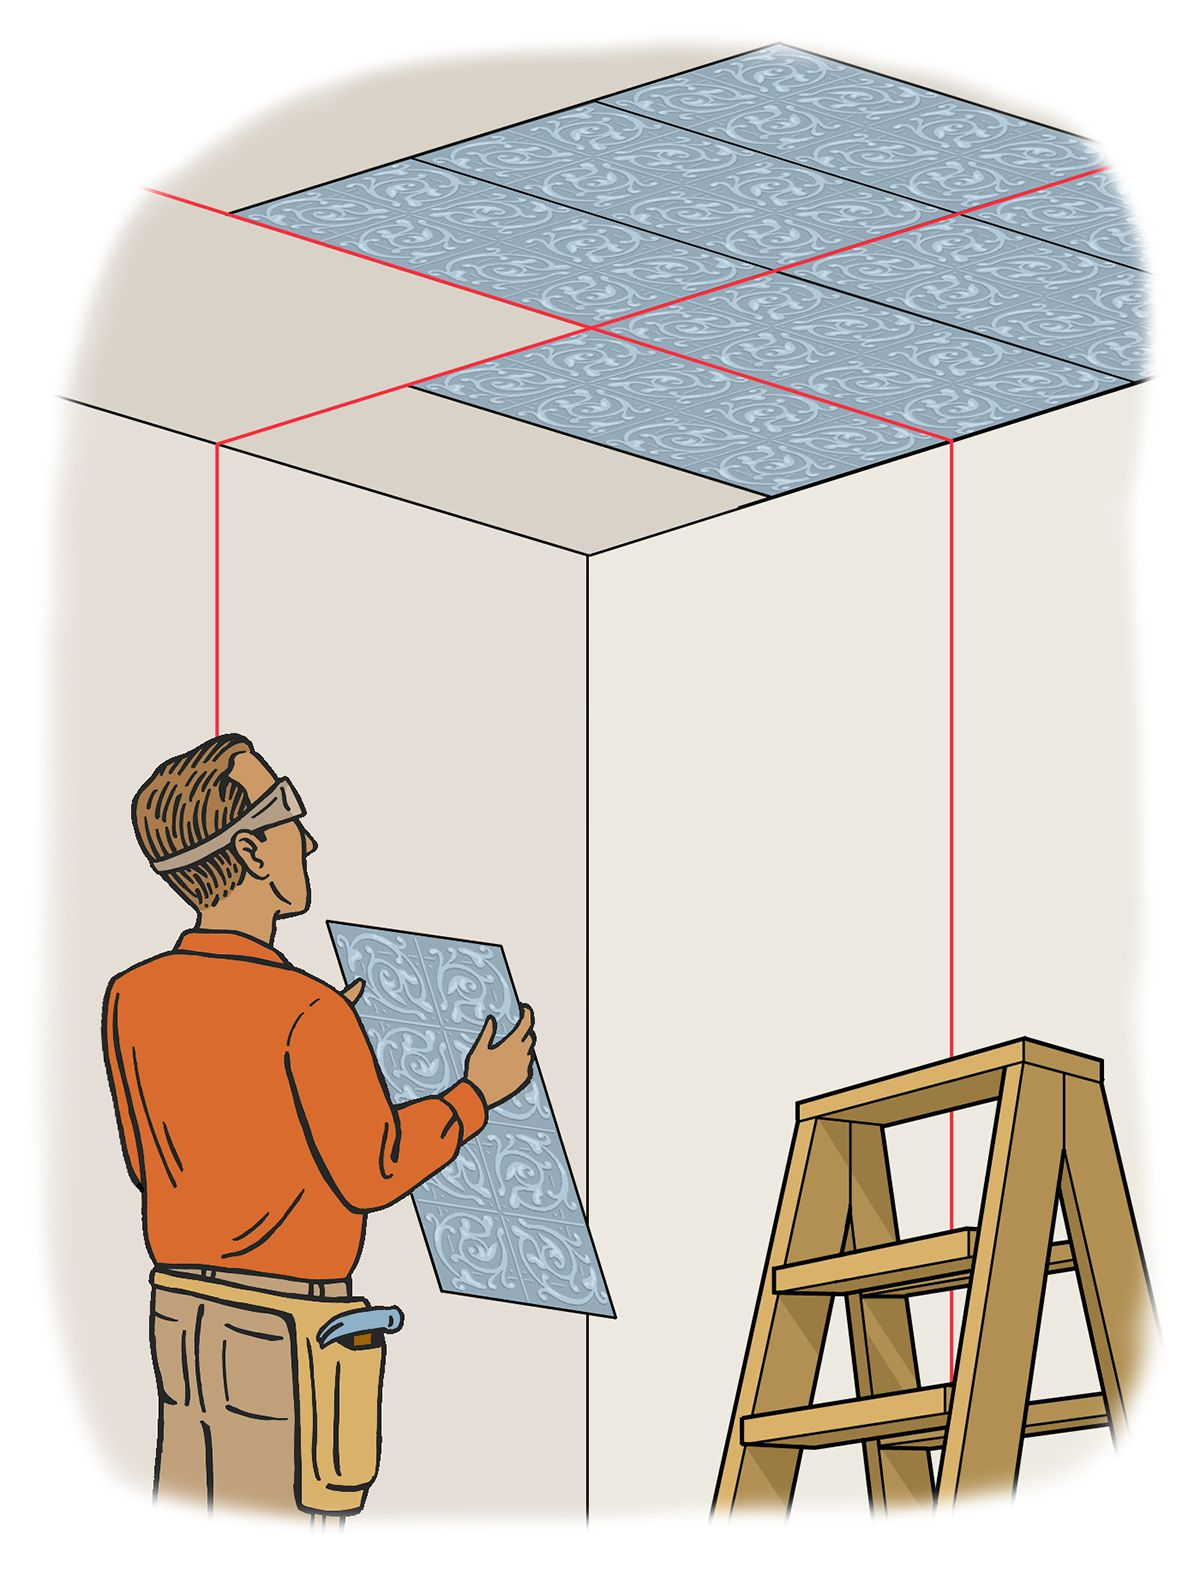 Person projecting a laser level onto the ceiling to help align a section of ceiling tile.